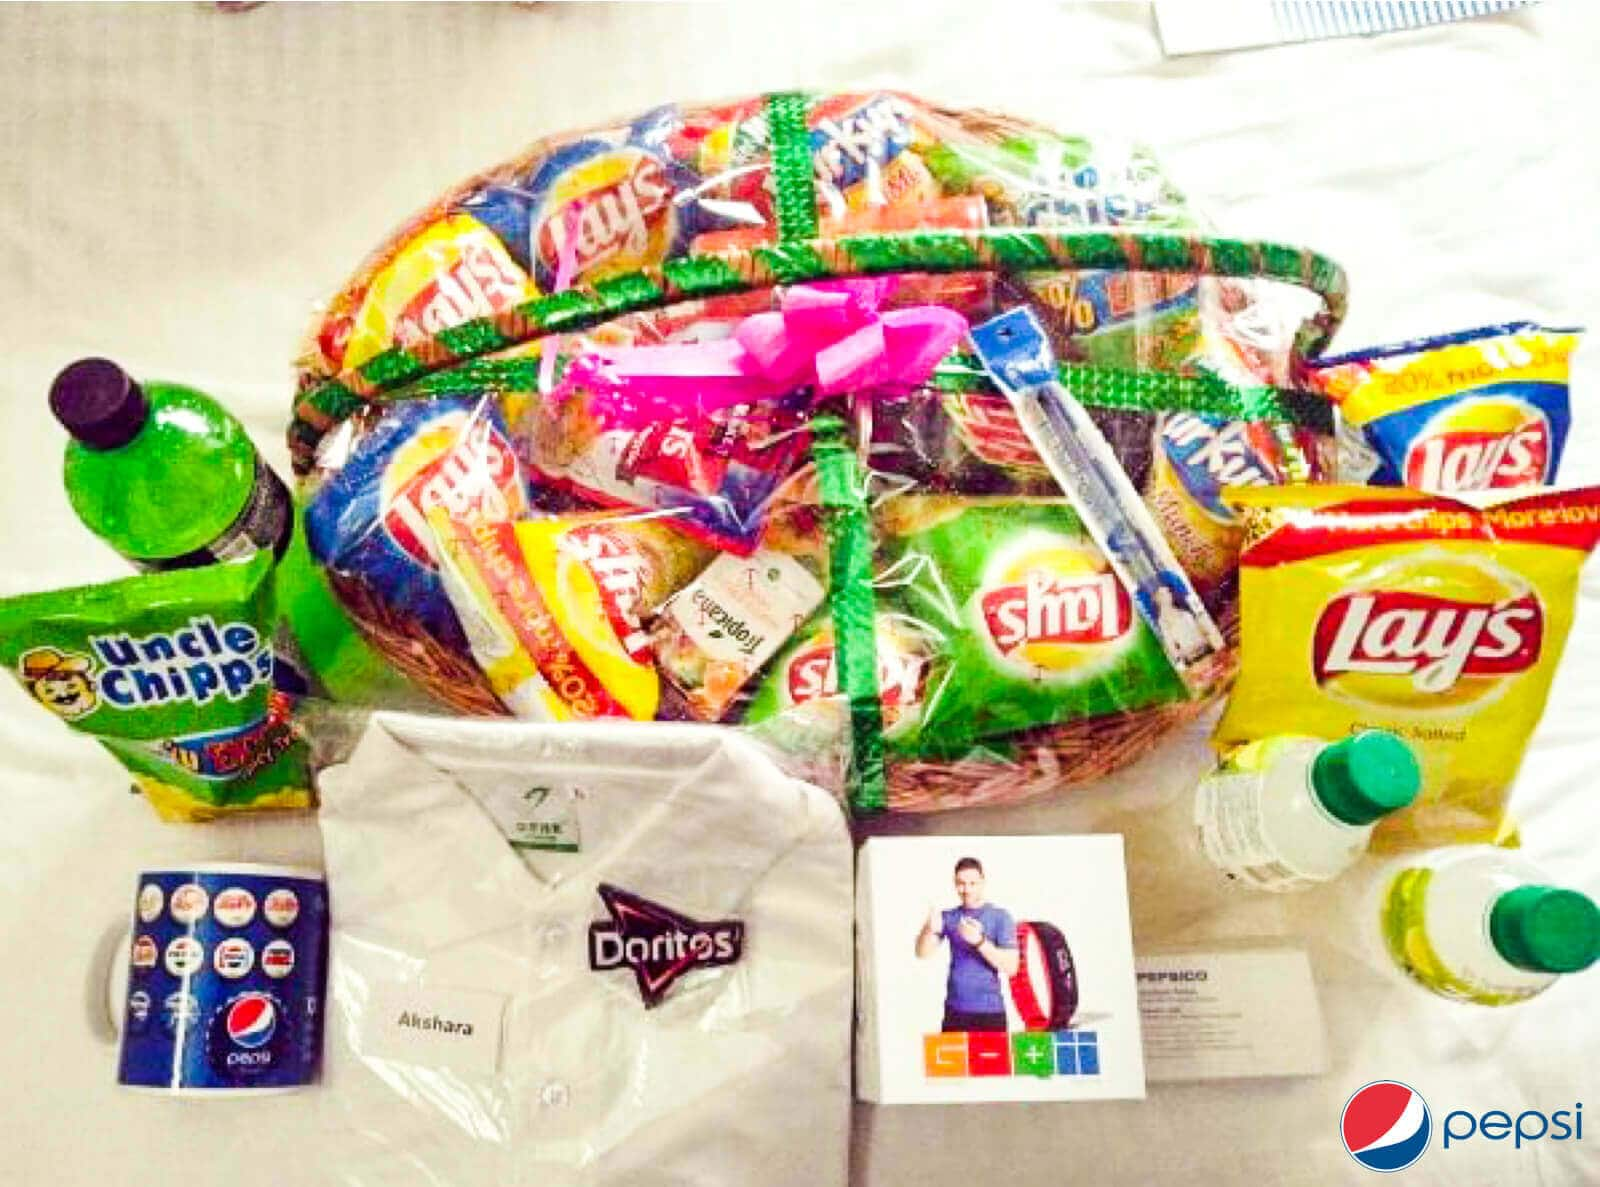 New-hire-gift-basket-for-onboarding-new-empoyees